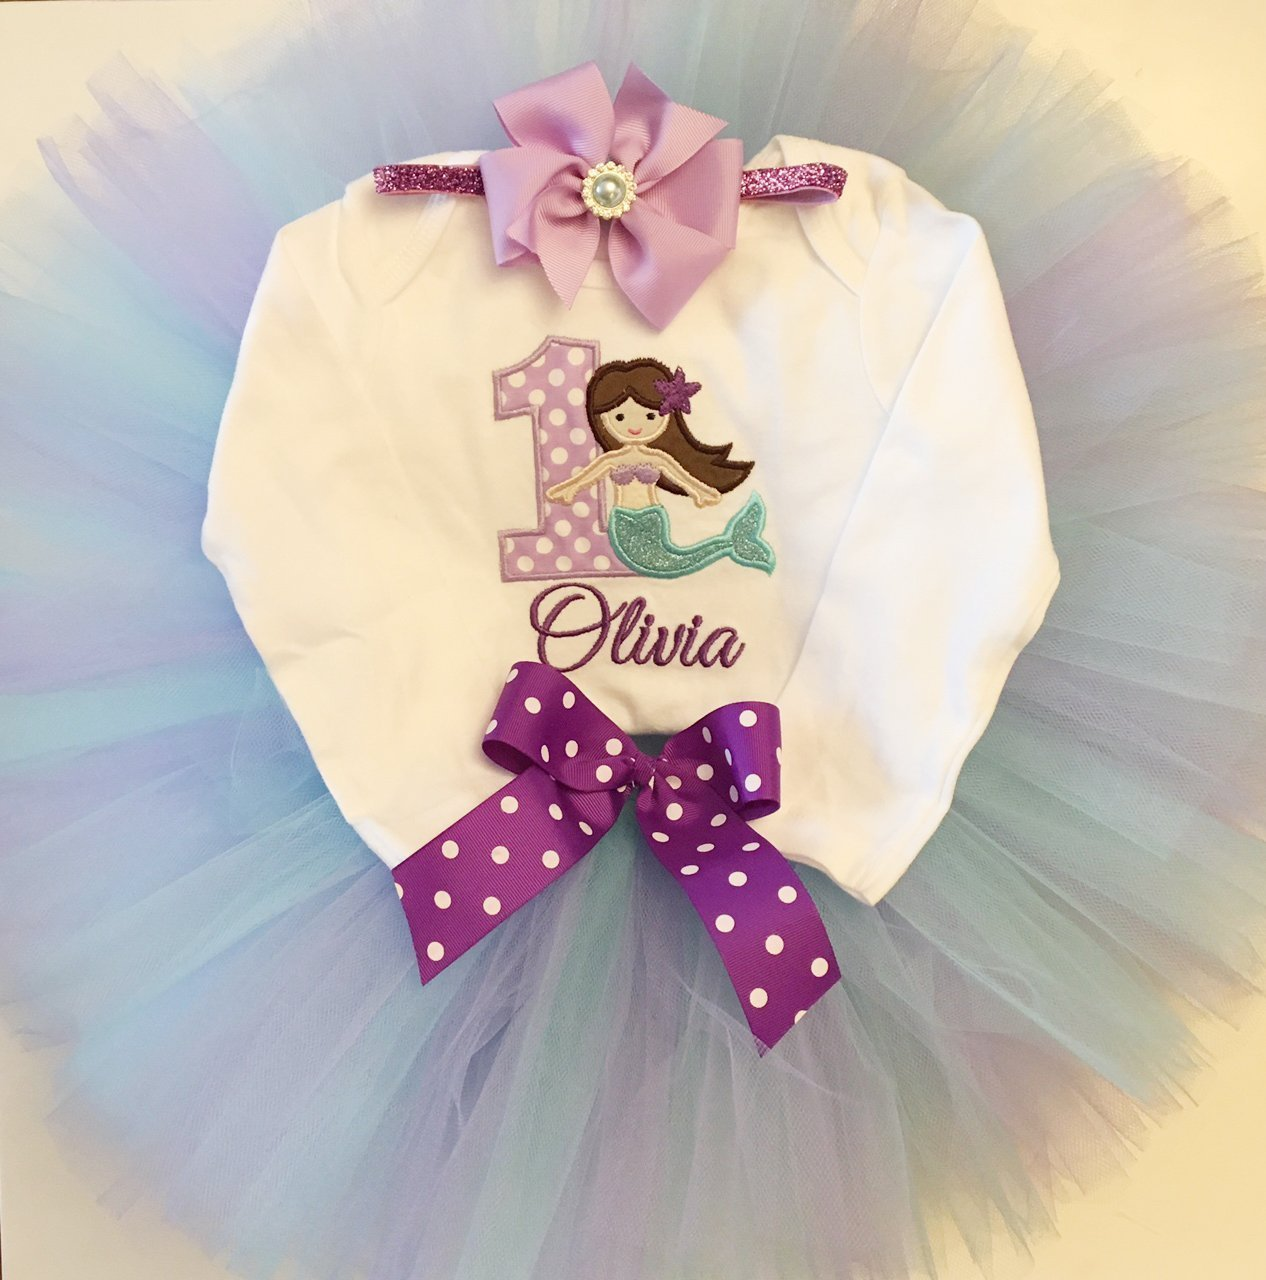 12dbd6a19 Amazon.com: Mermaid 1st Birthday Tutu Outfit- Personalized Baby Girl:  Handmade